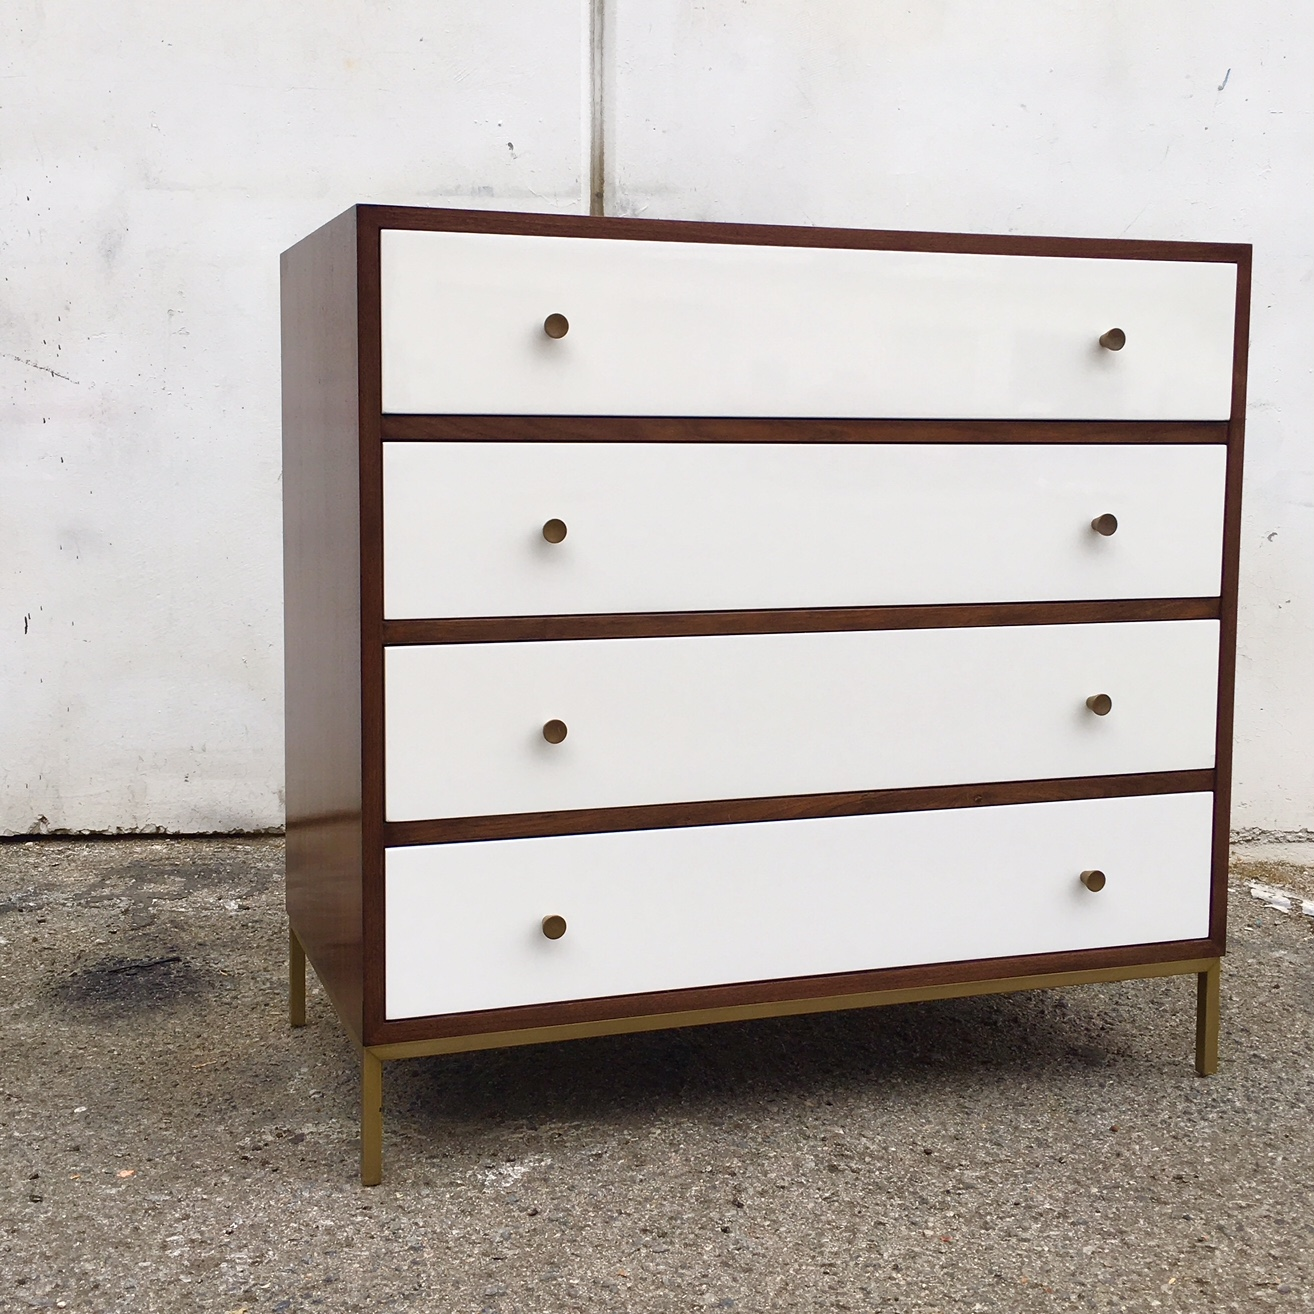 4 Drawer Dresser by Maison 55 for Resource Decor